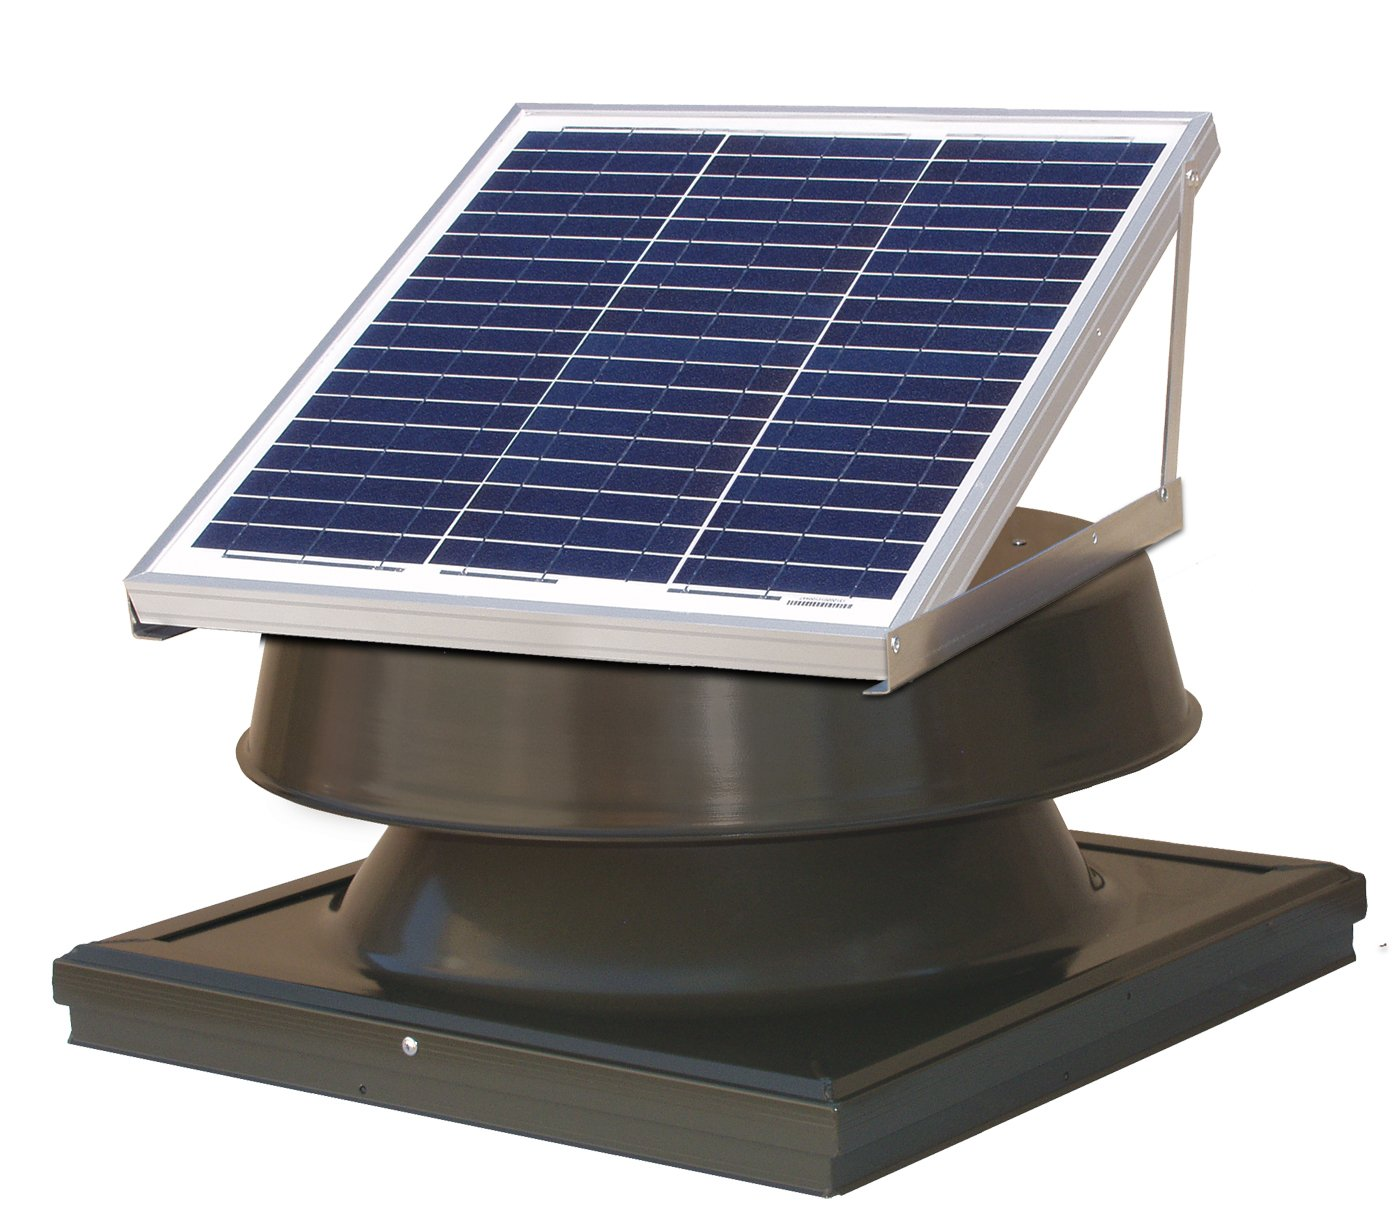 Natural Light 36-Watt Curb Mount Solar Attic Fan - Bronze